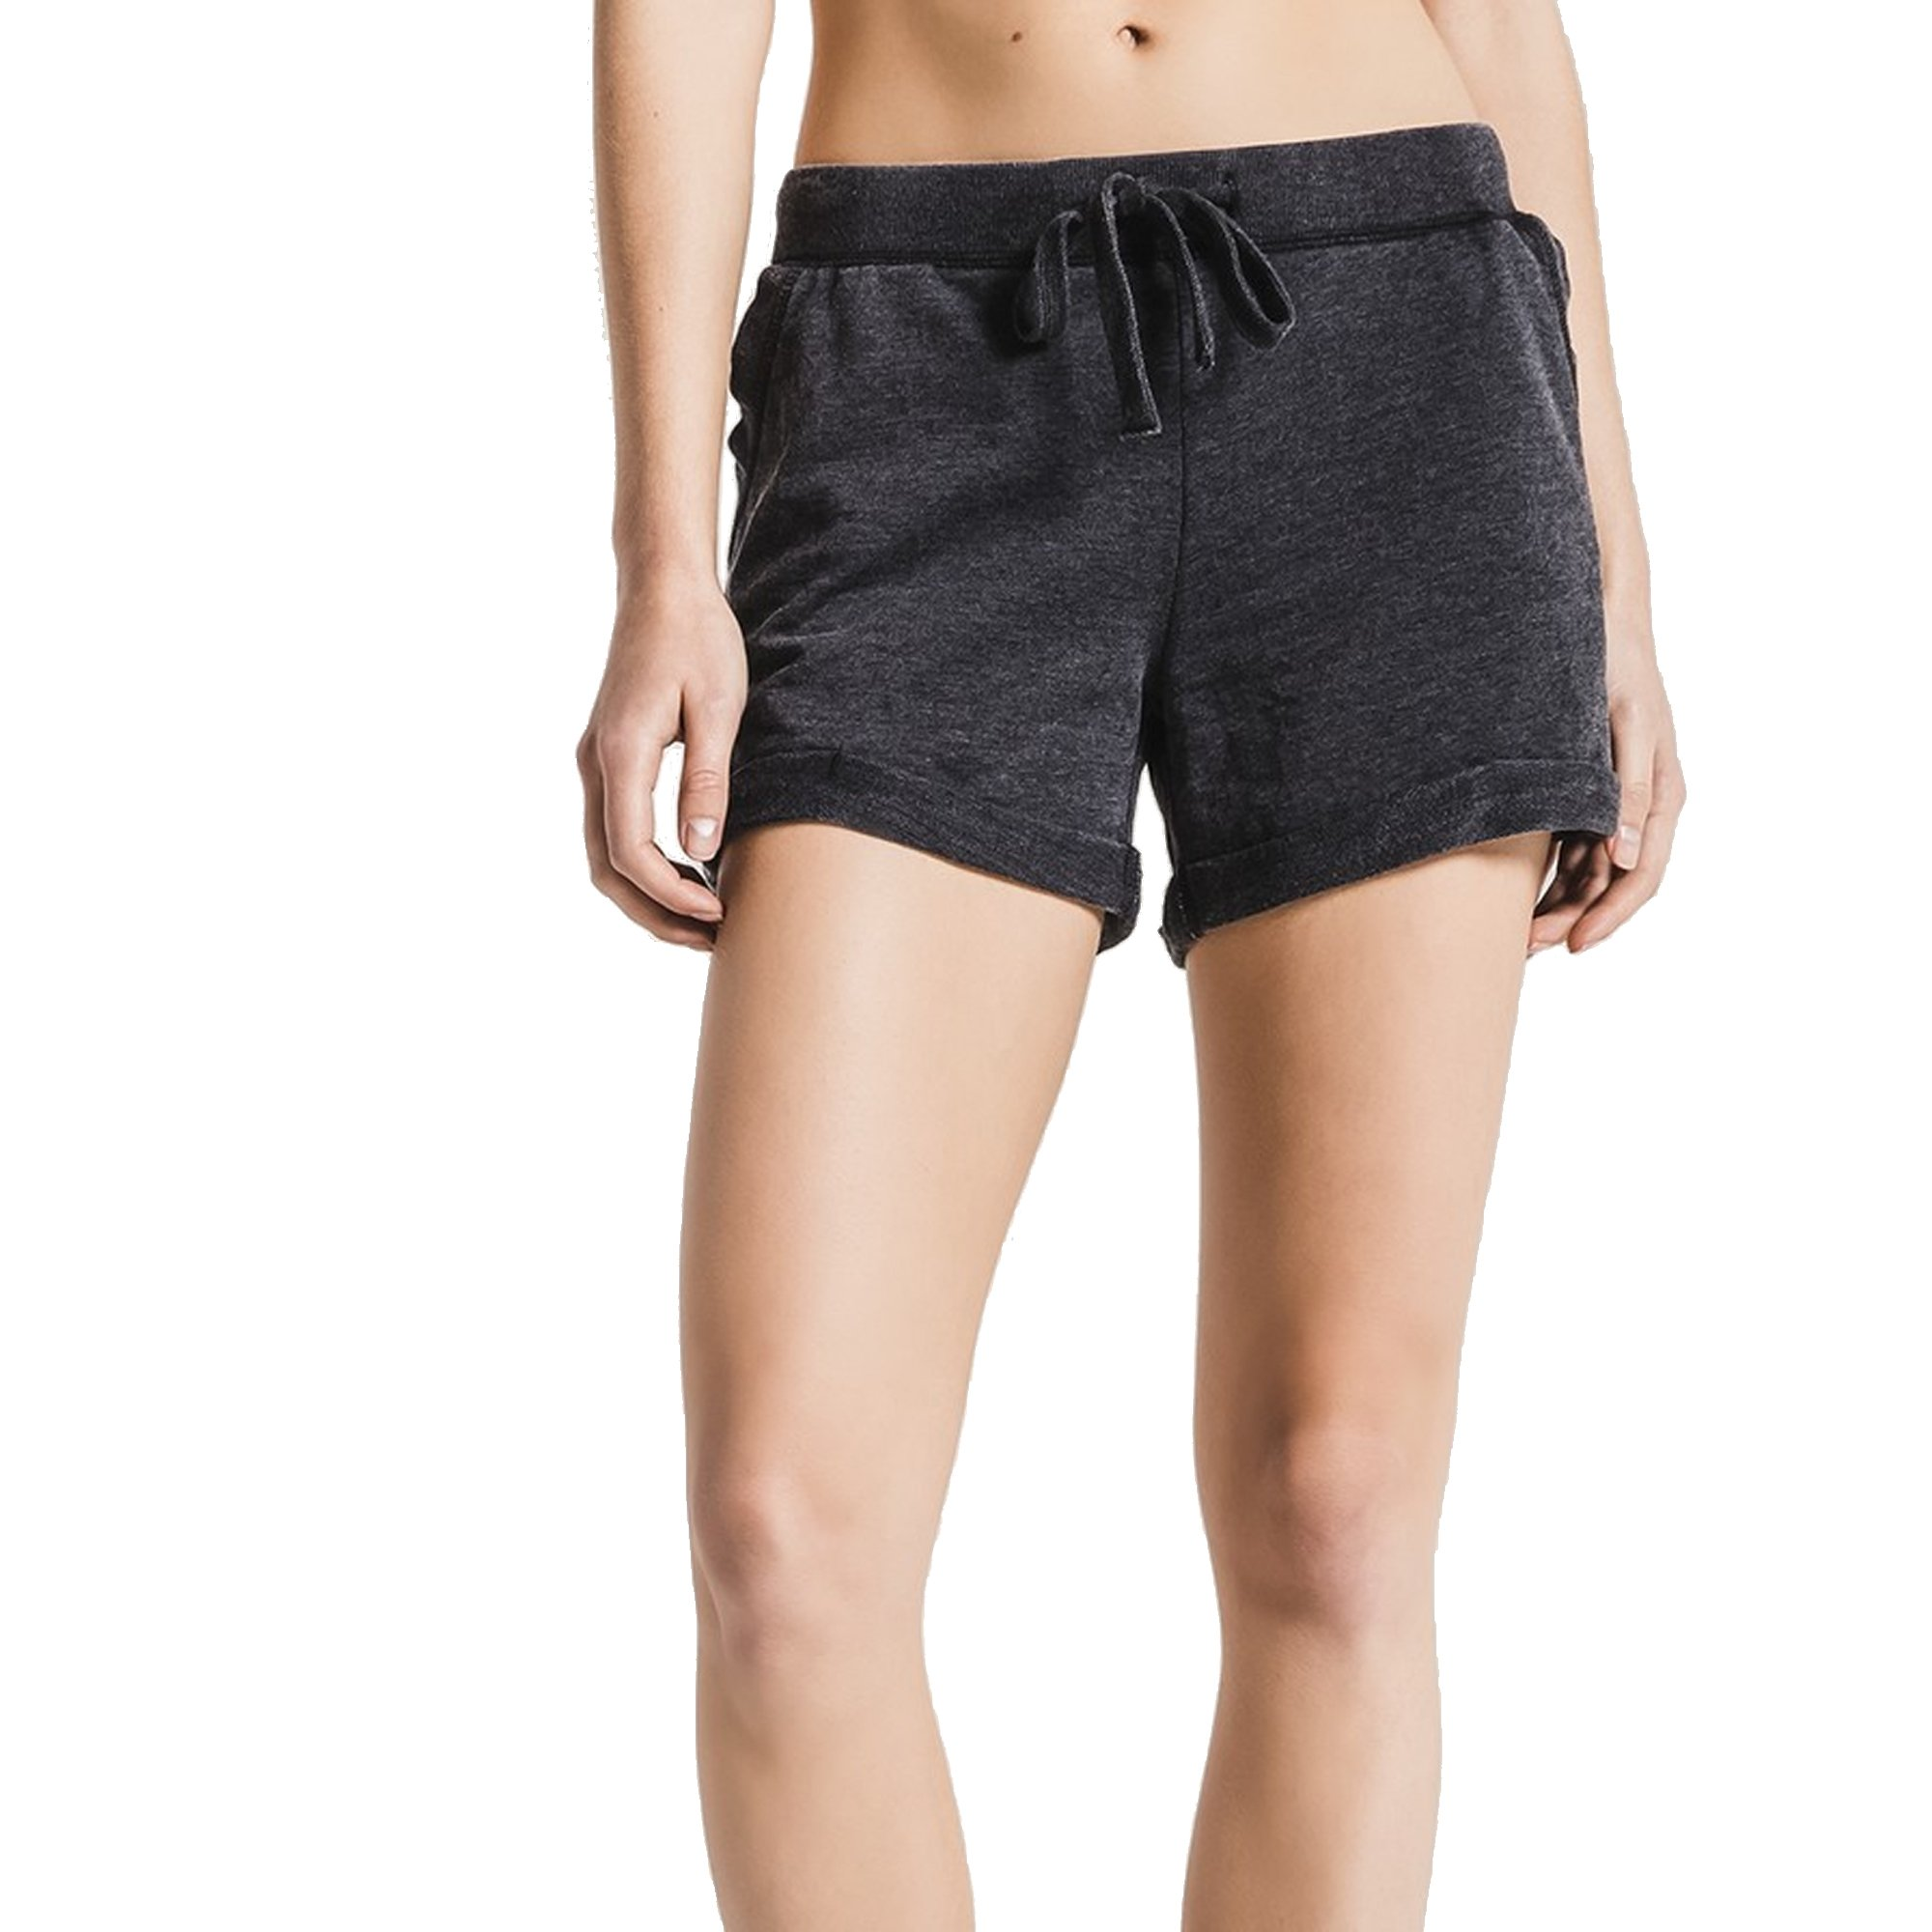 Z SUPPLY Women's The Boyfriend Short Burnout Fabric Relaxed Fit, Black, Small